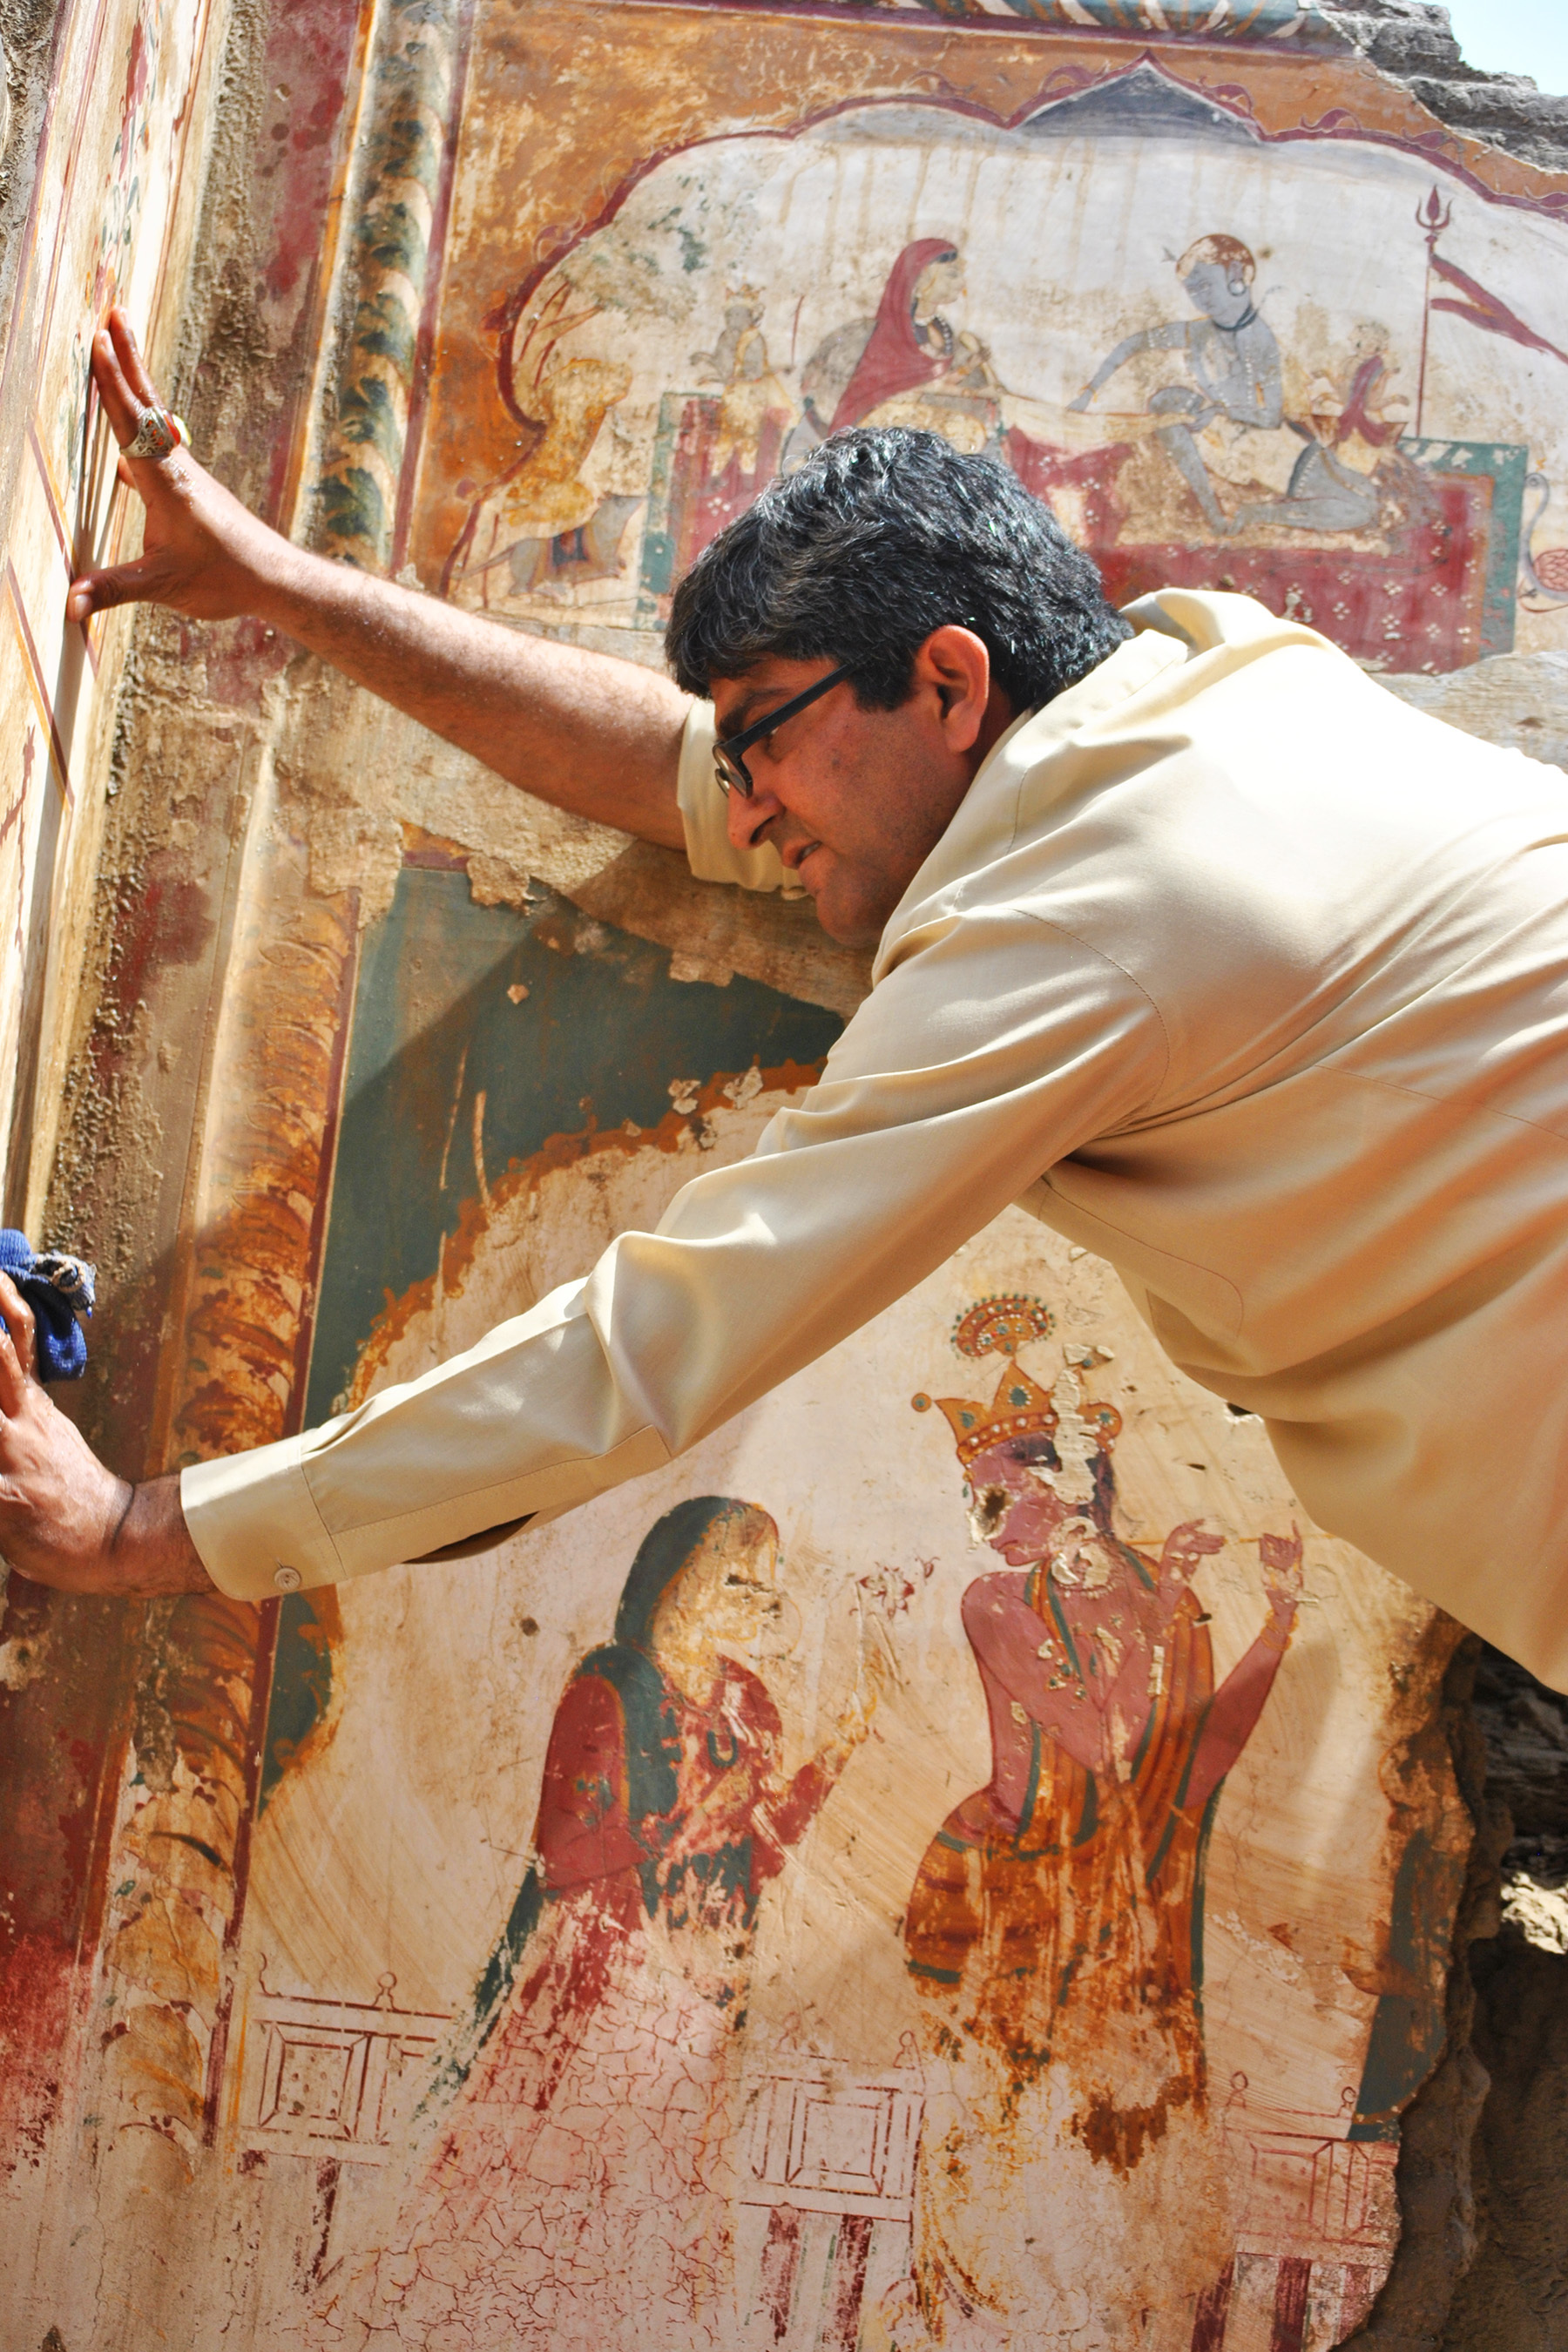 Passion for art: Dr Ghulam Abbas climbed up a ladder to wipe the dust off the fresco paintings on a facade of Diwan's haveli.